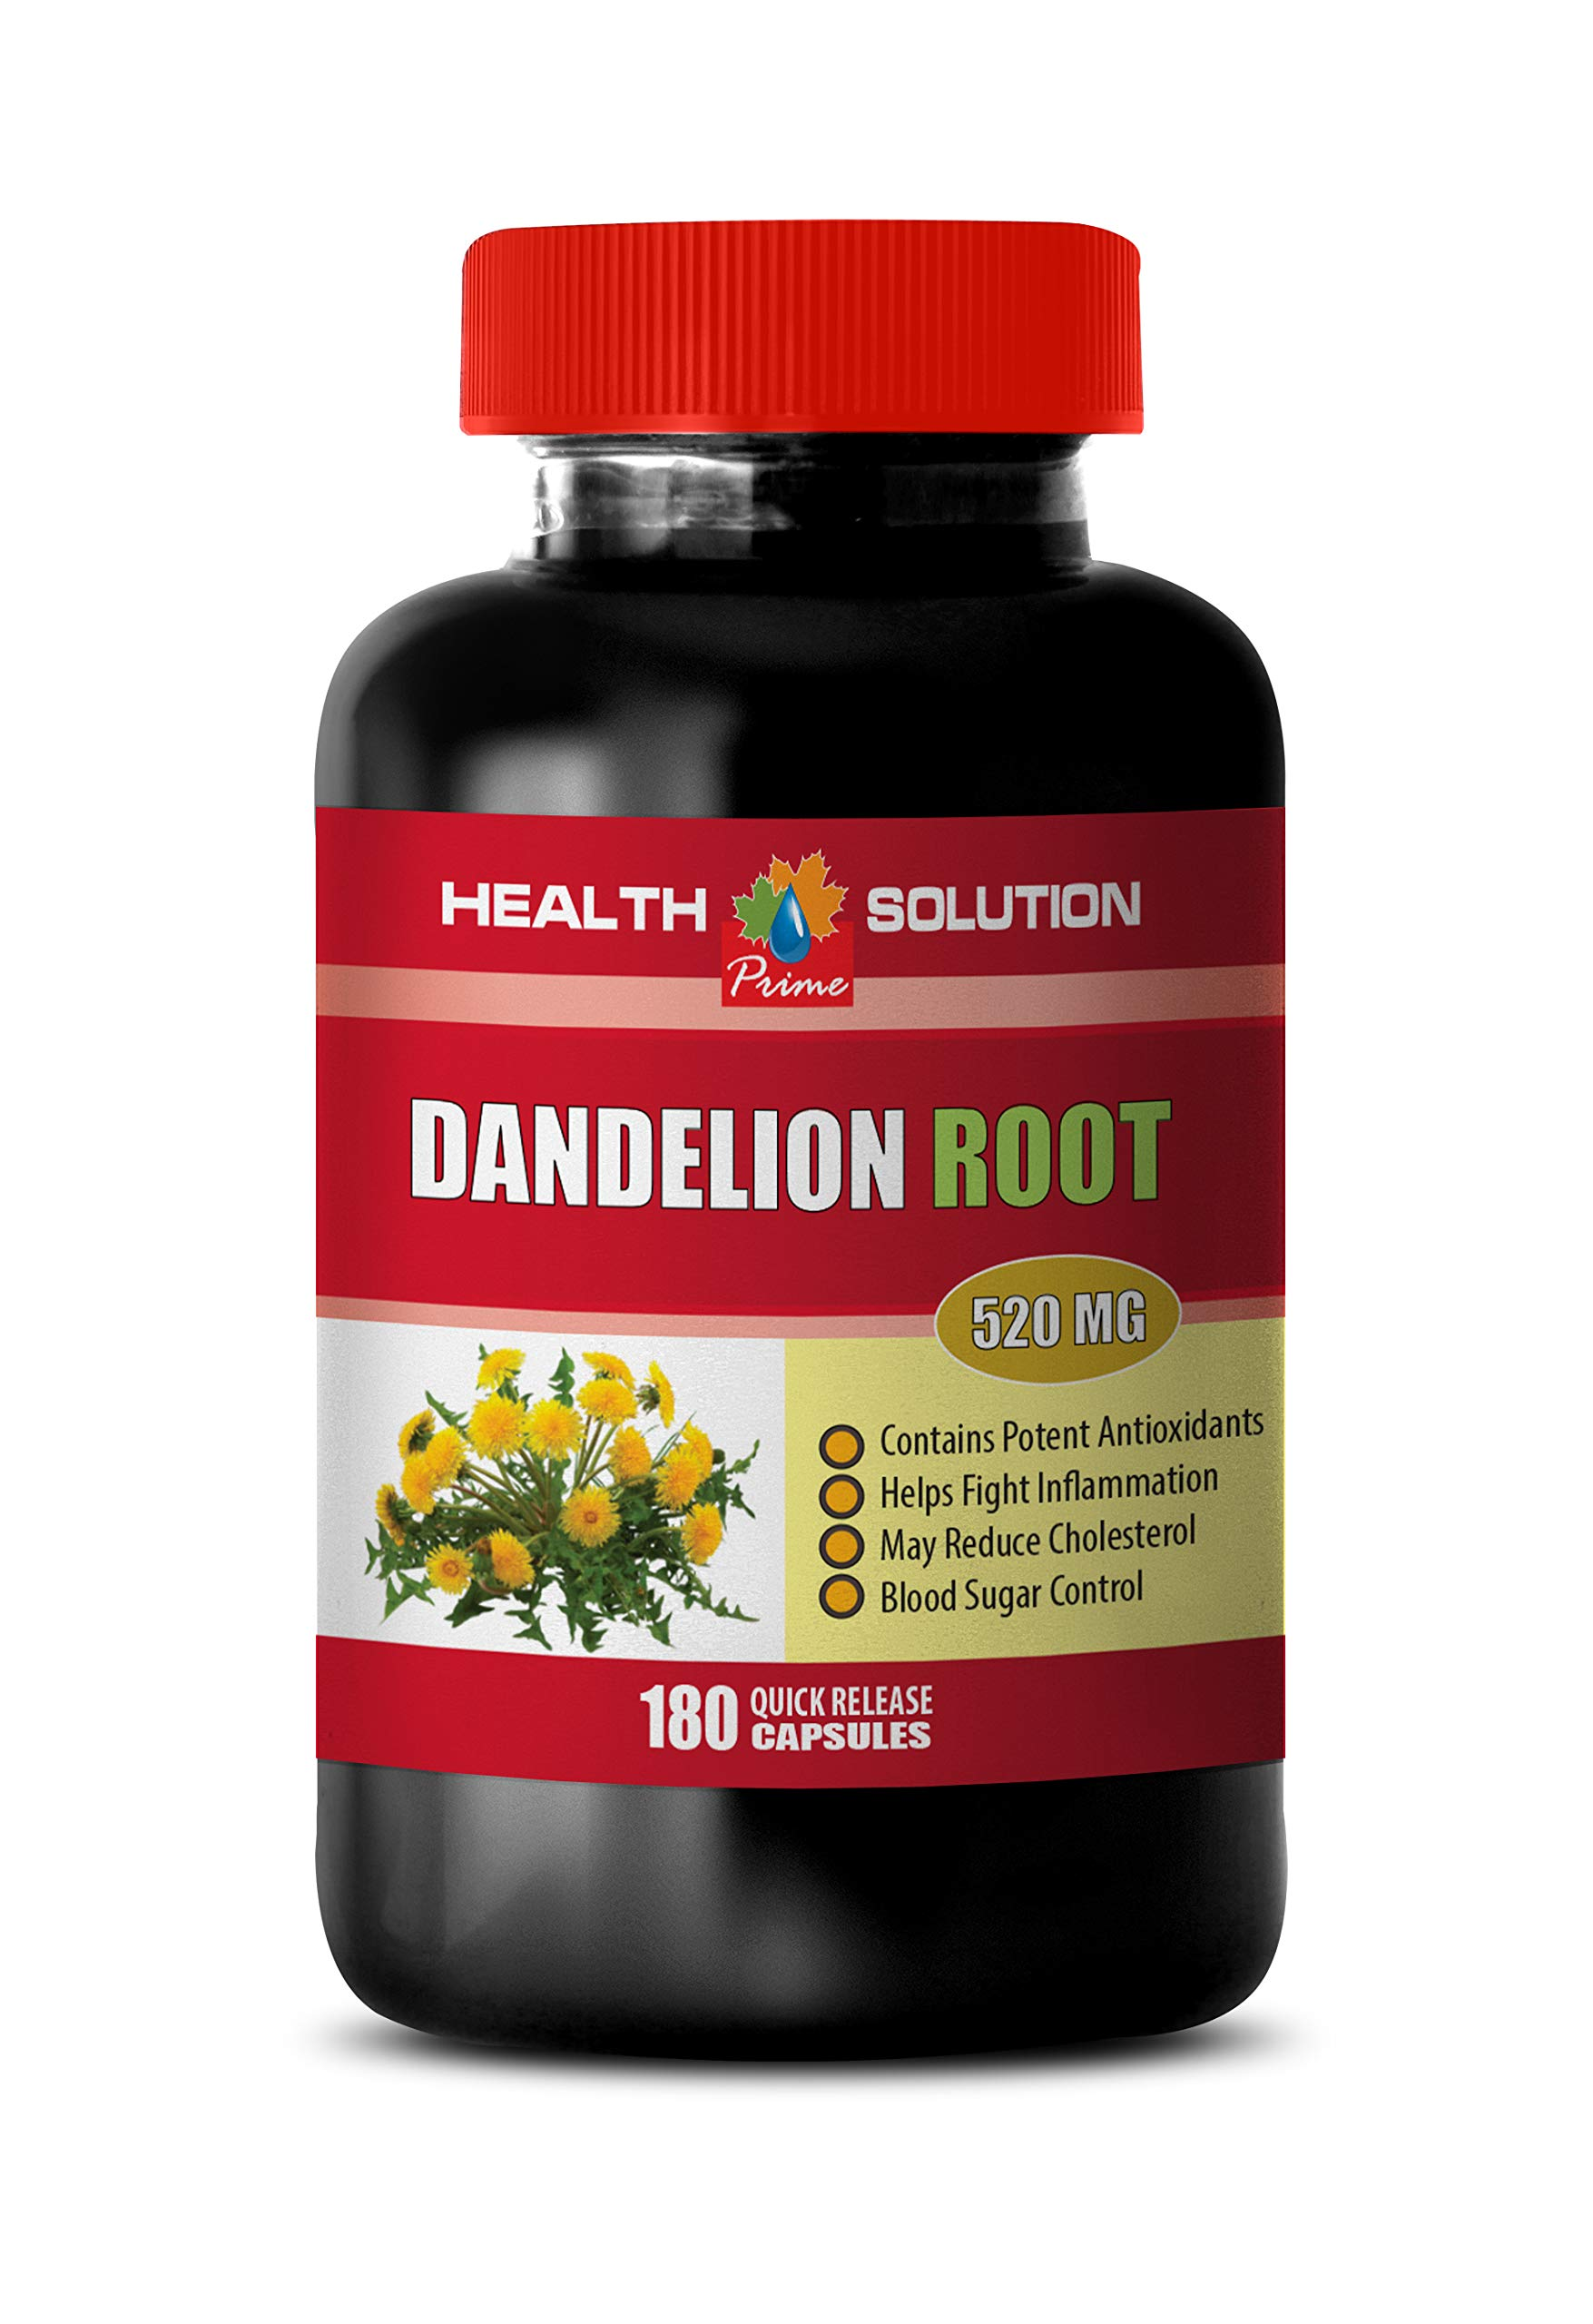 Herbal Diuretic & Anti-inflammatory Pill - Dandelion Root Extract 520Mg - Dandelion Root Weight Loss - 1 Bottle 180 Capsules